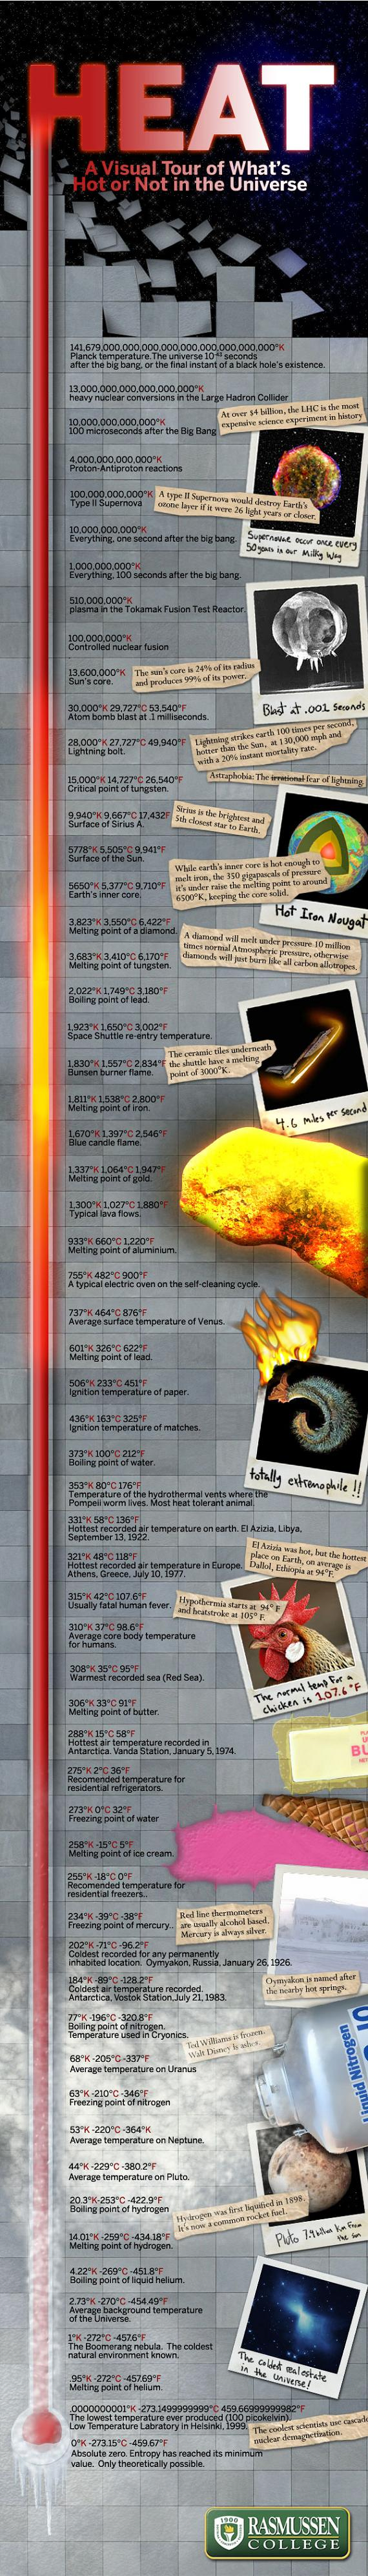 temperature from hottest to coldest infographic How to Grasp Size, Scale and Temperature with Three Giant Infographics